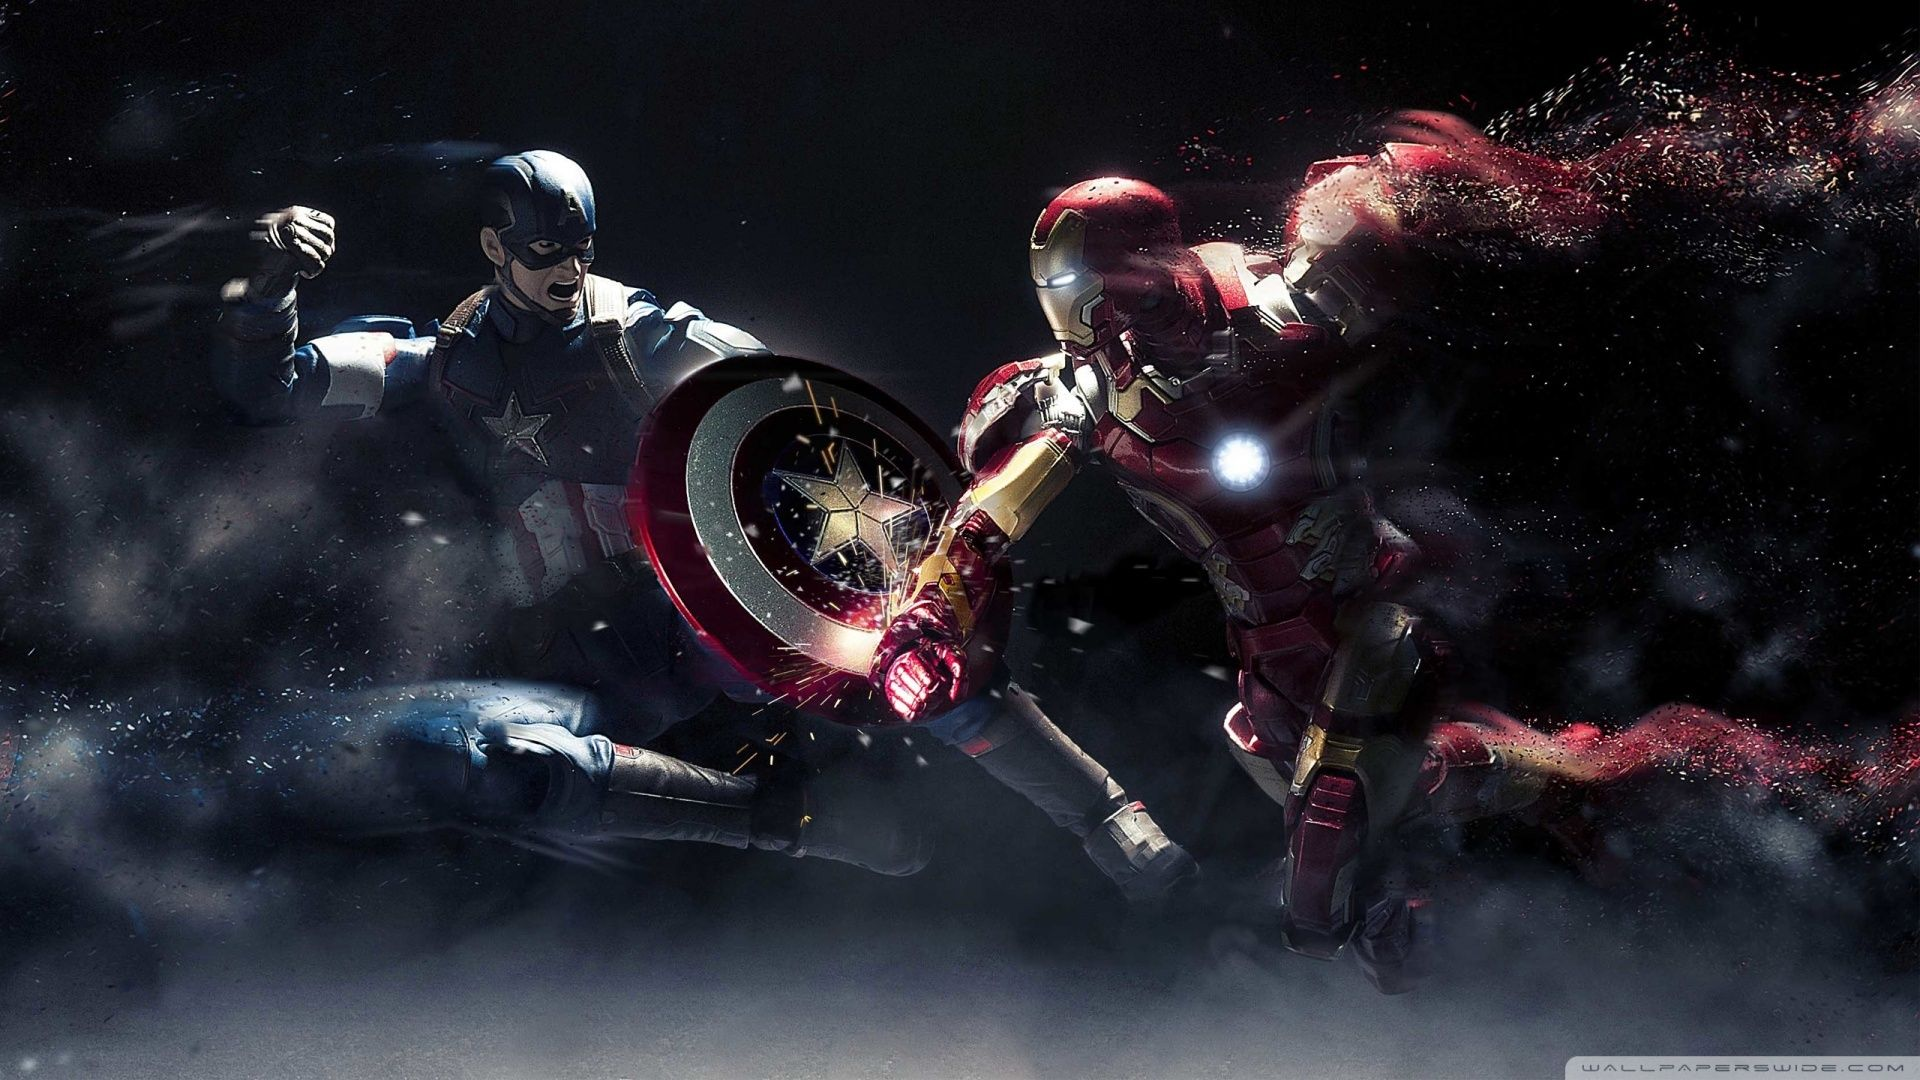 captain america images free download